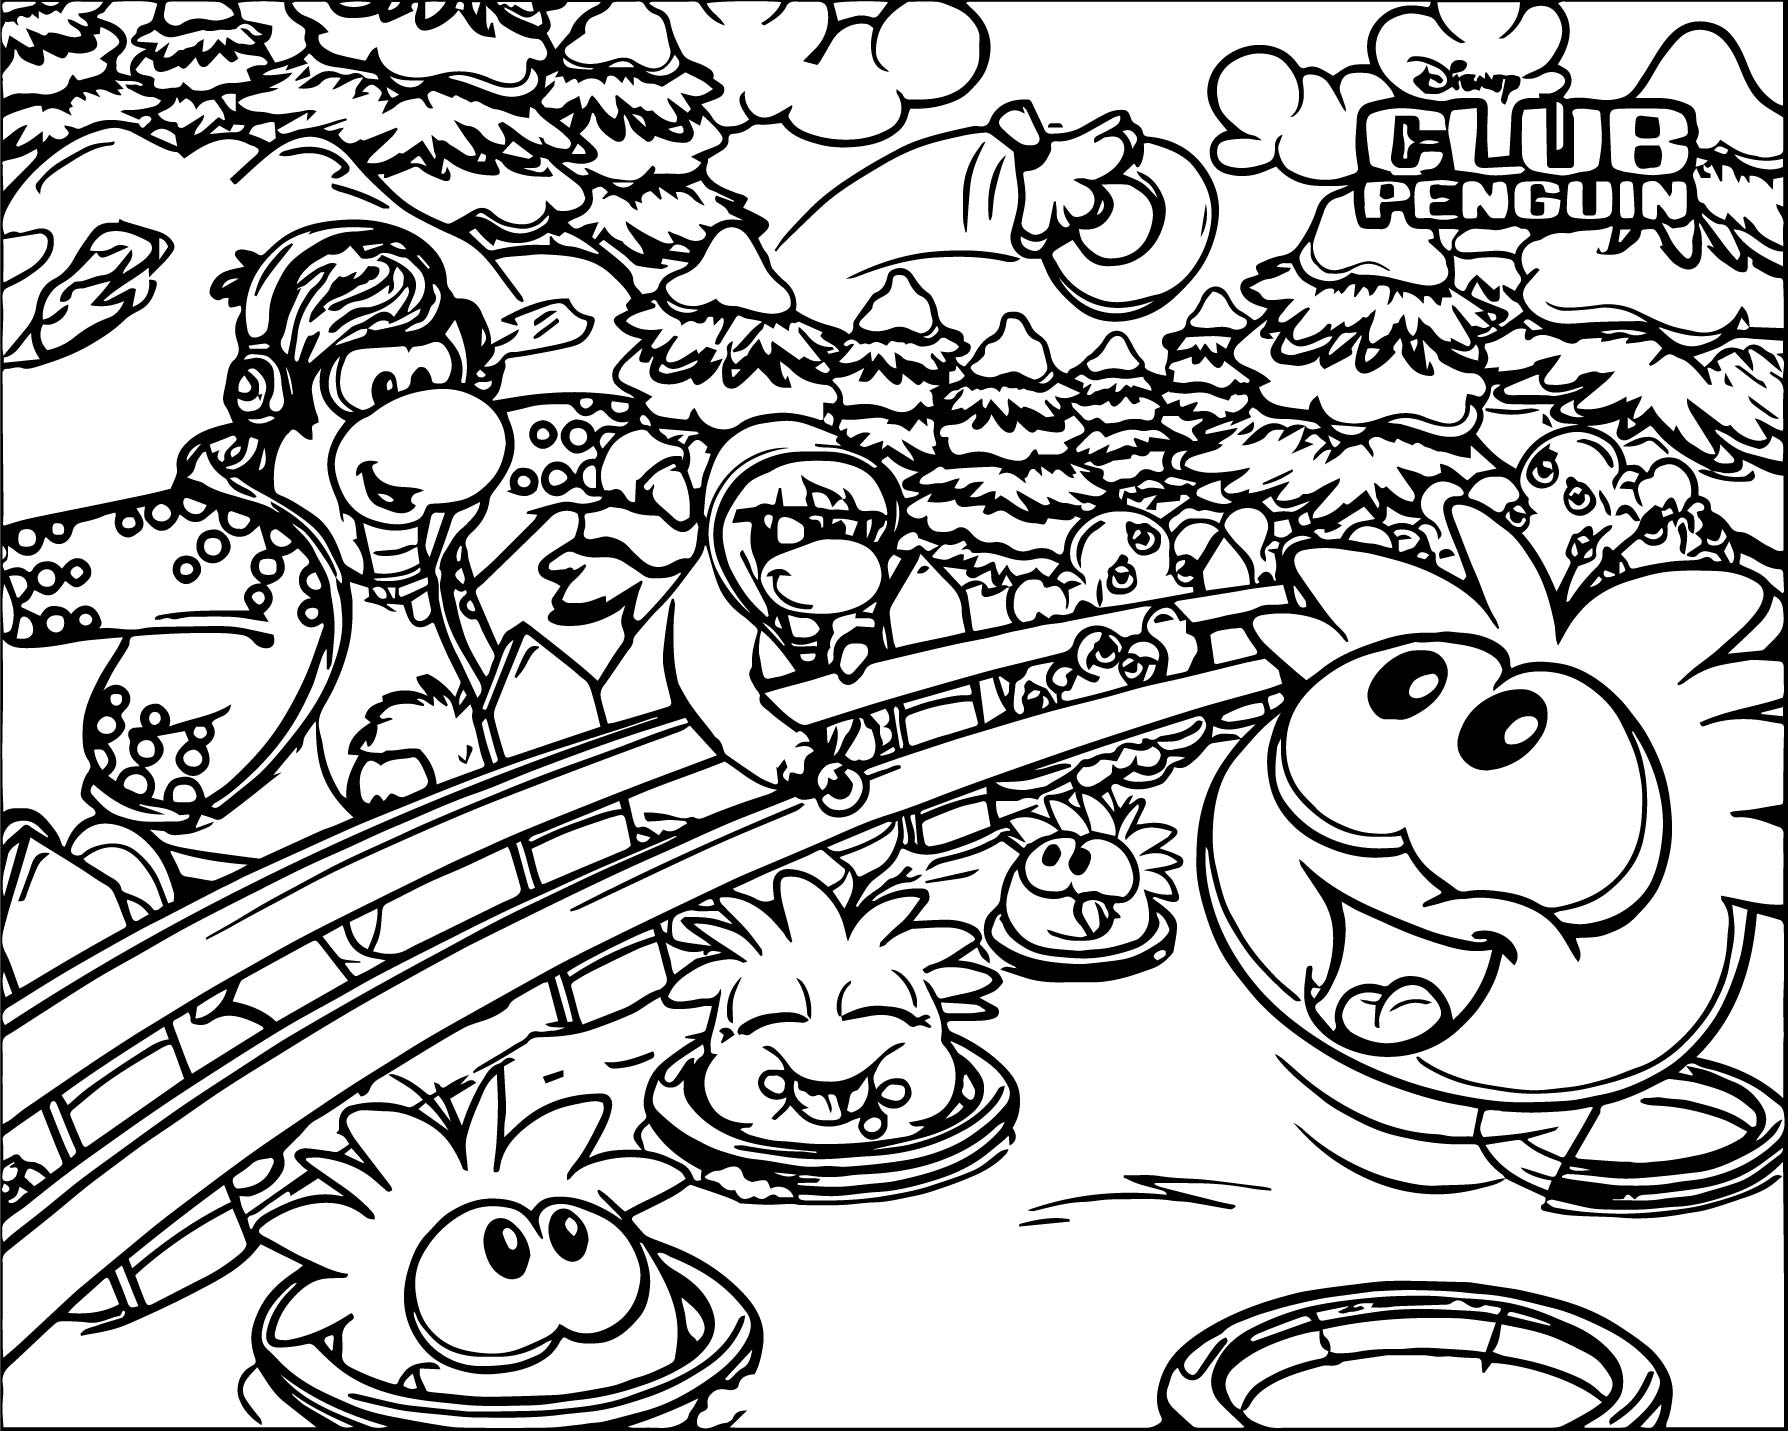 Club penguin coloring pages - a-k-b.info